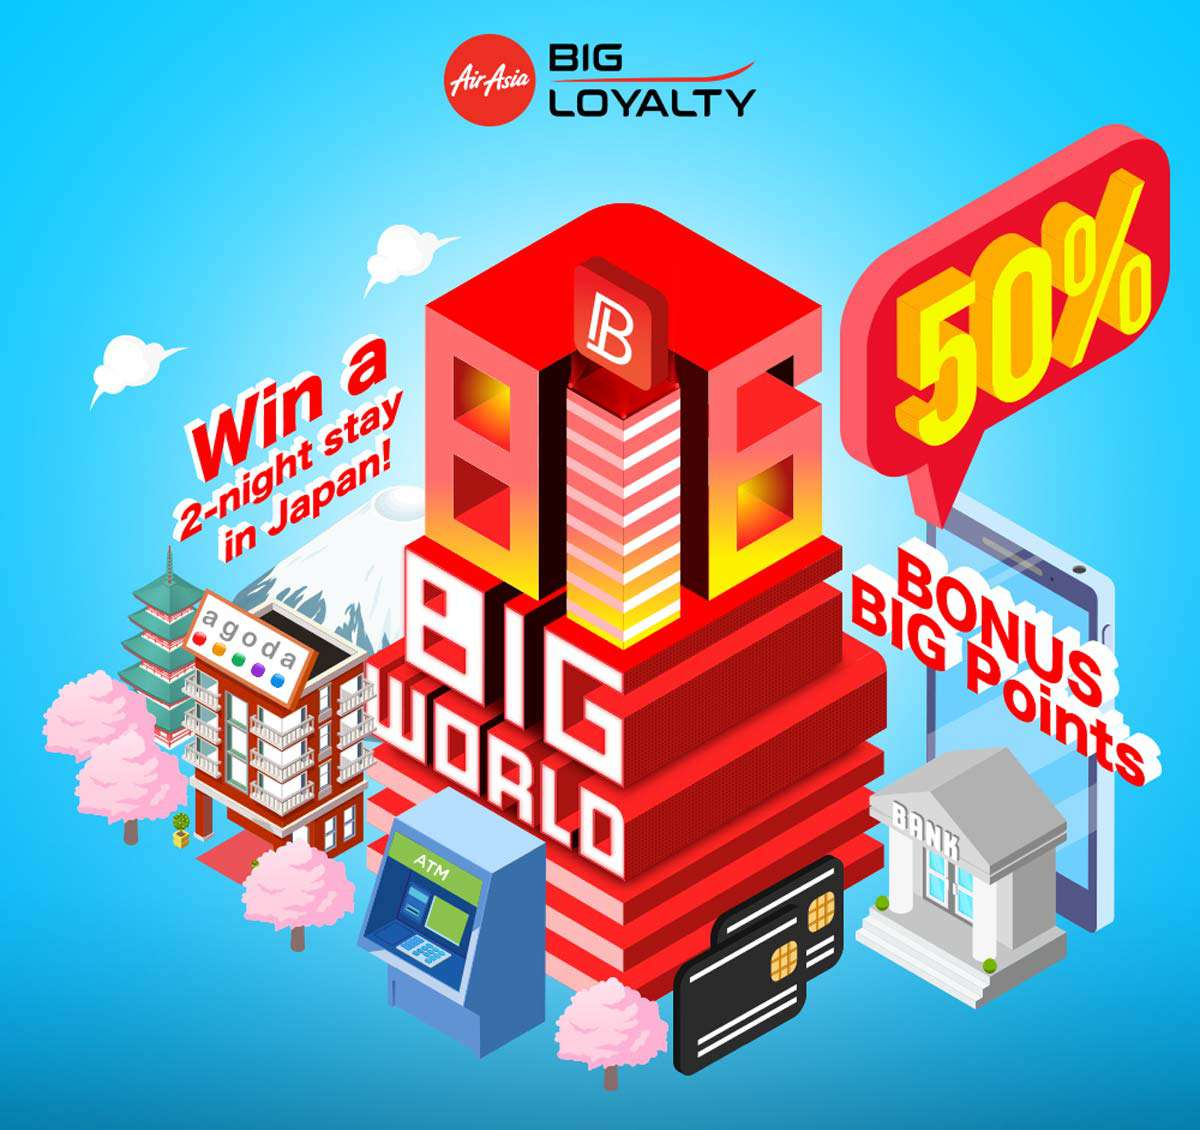 Convert and get 50% Bonus AirAsia BIG Points and stand a chance to win 2 night hotel stay in Japan